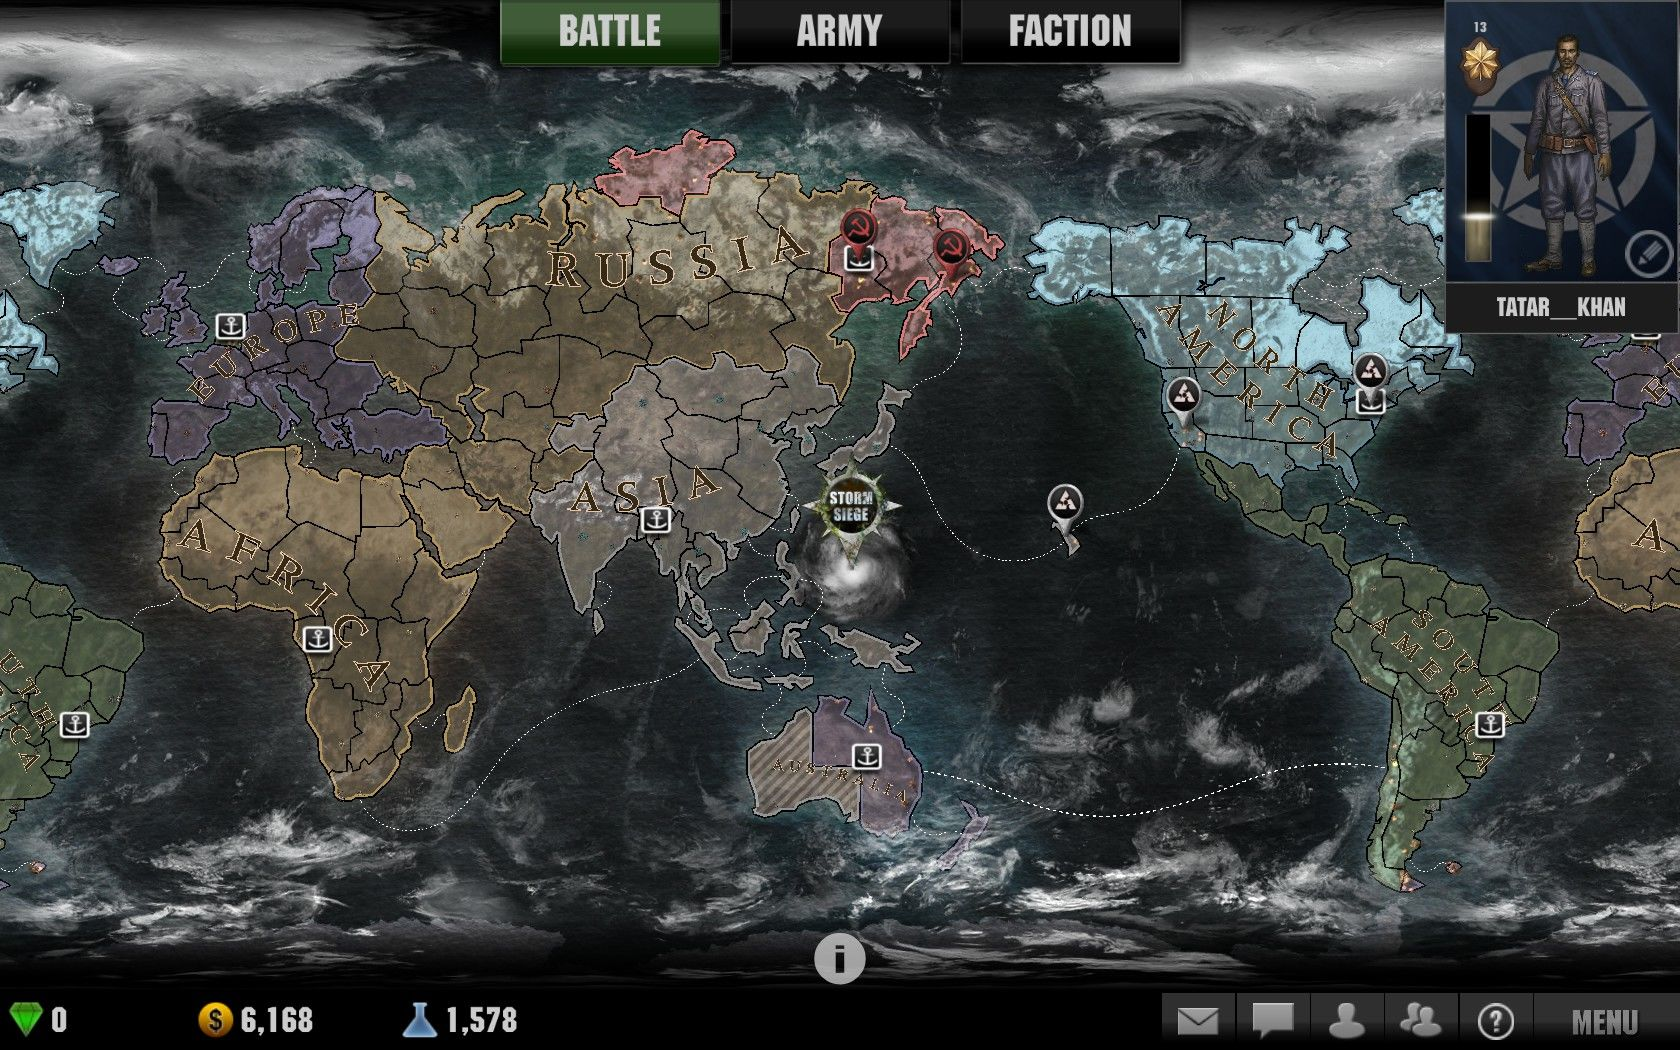 March of war stormsiege screenshots for windows mobygames large pin on world map selecting which will start stormsiege campaign it appears even if dlc content is not installed clicking it will download dlc gumiabroncs Images